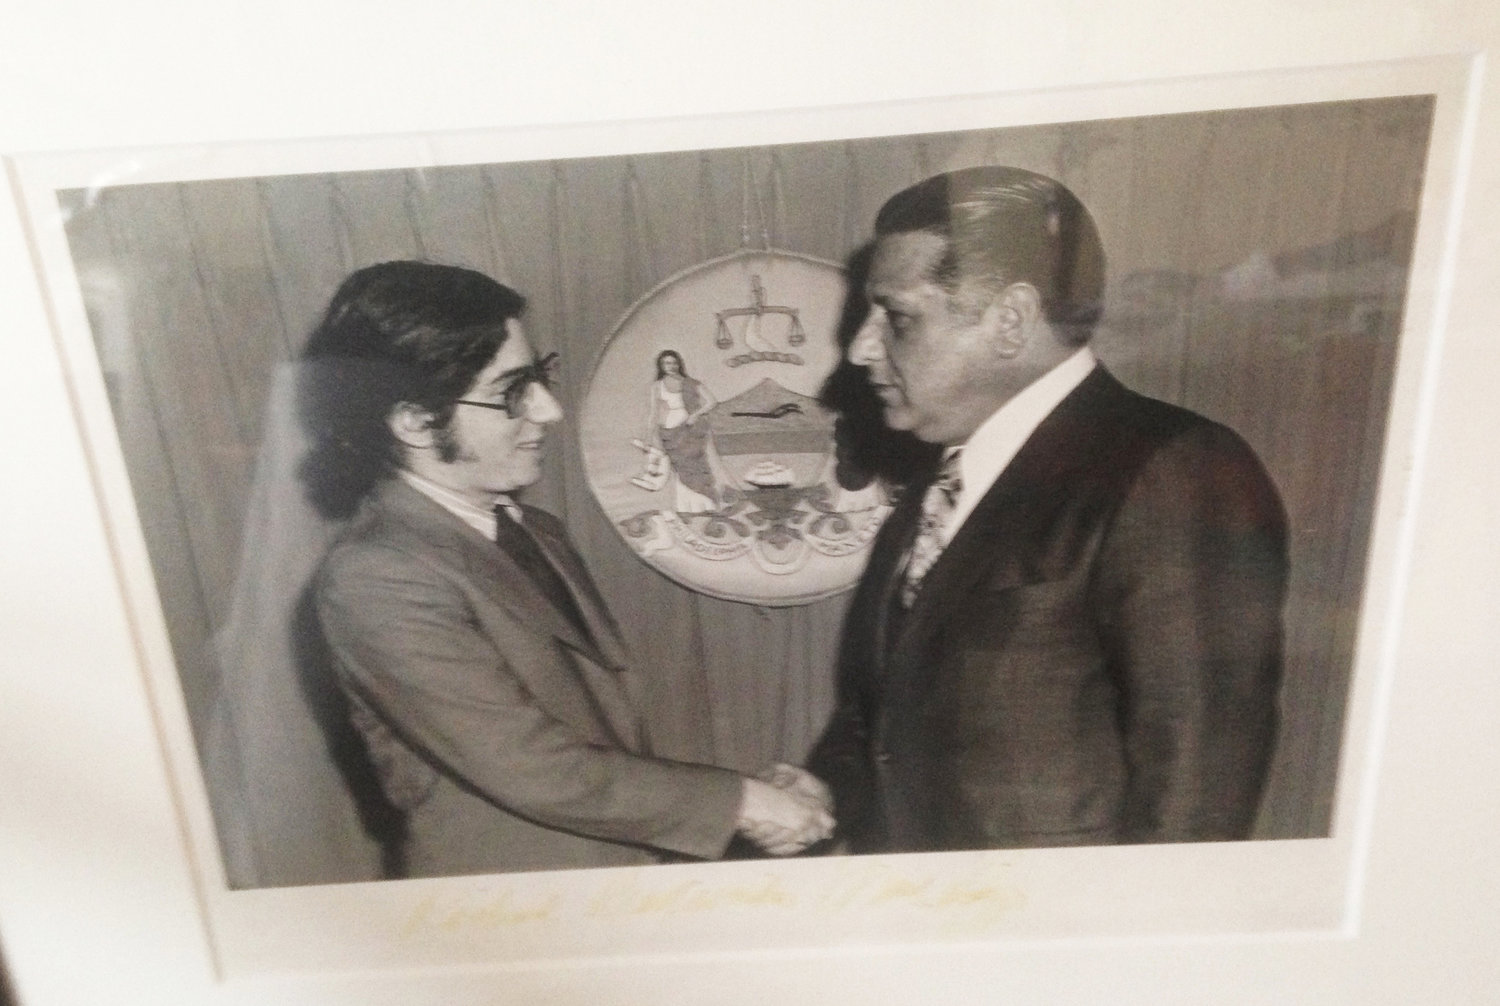 A photograph of Mayor Frank Rizzo shaking hands in front of the seal of Philadelphia at City Hall in 1973.